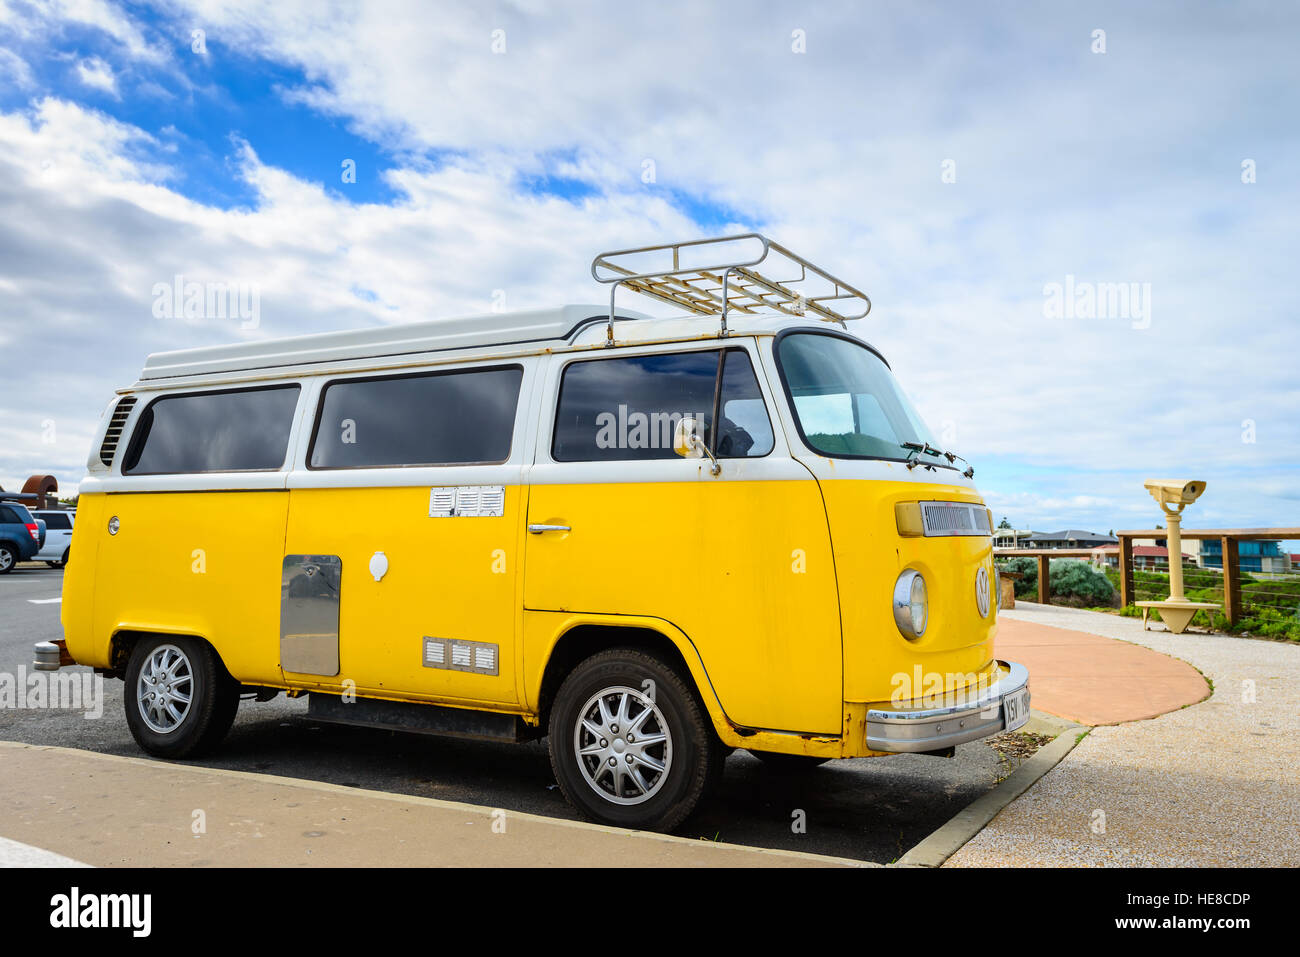 Adelaide, Australia - August 14, 2016: Classic yellow Volkswagen Transporter camper van parked on a street at Middleton - Stock Image